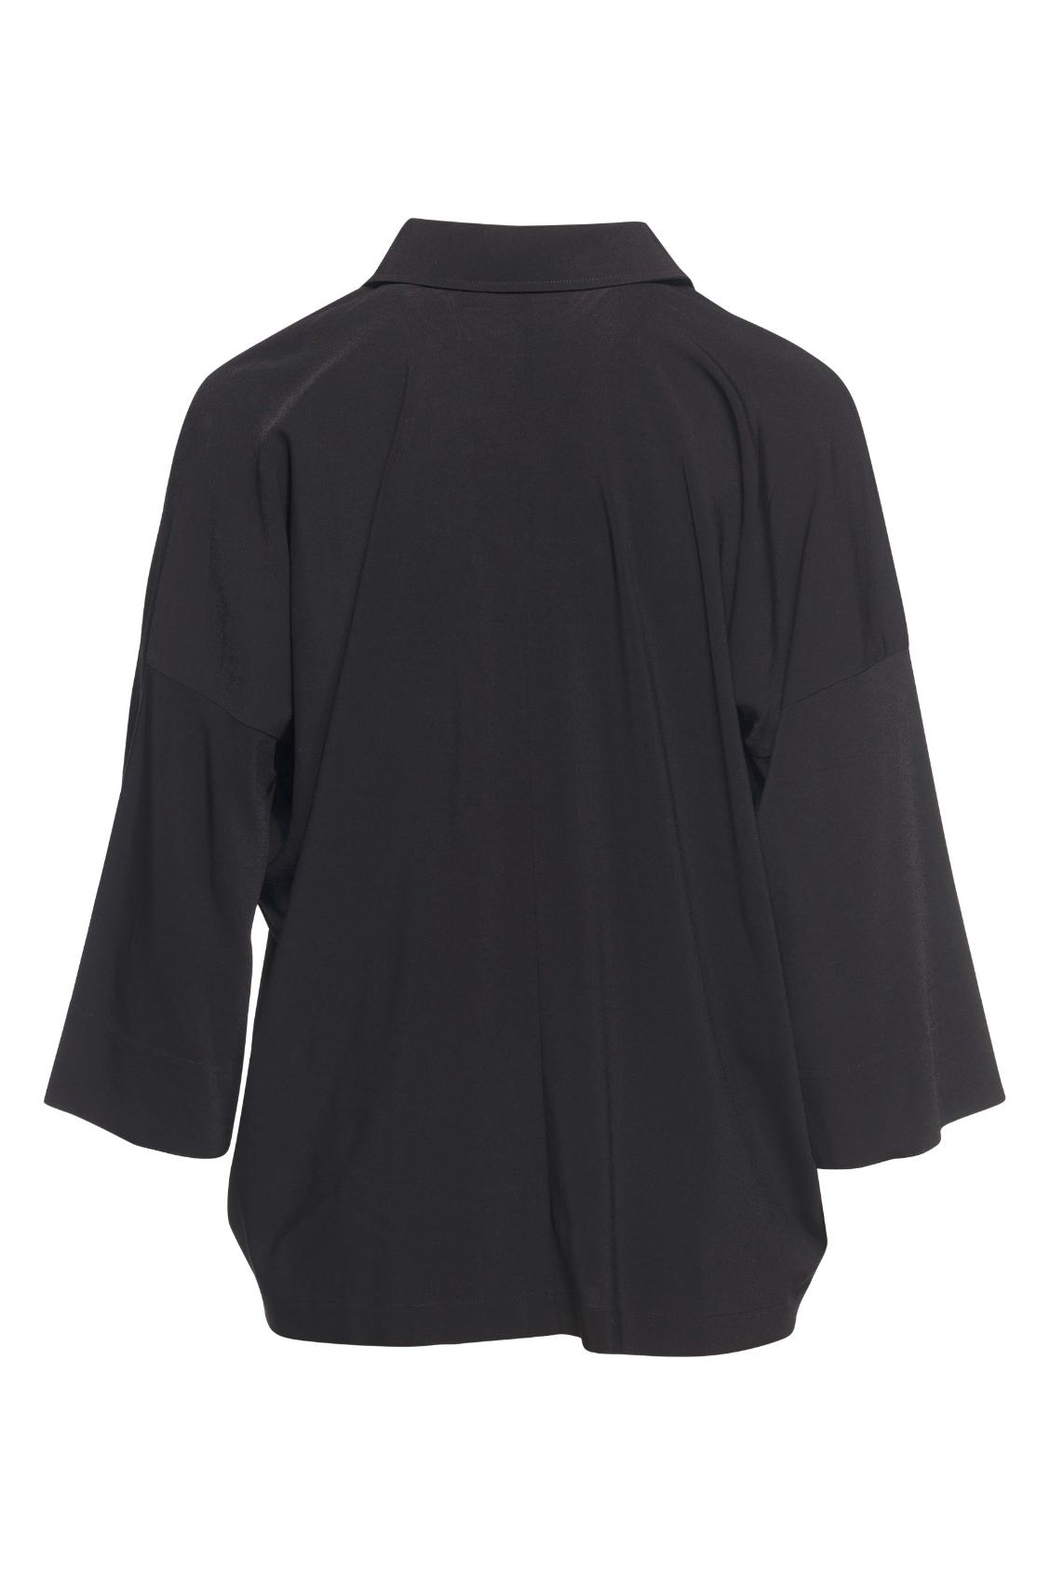 Vince Black Oversized Blouse - Front Full Image